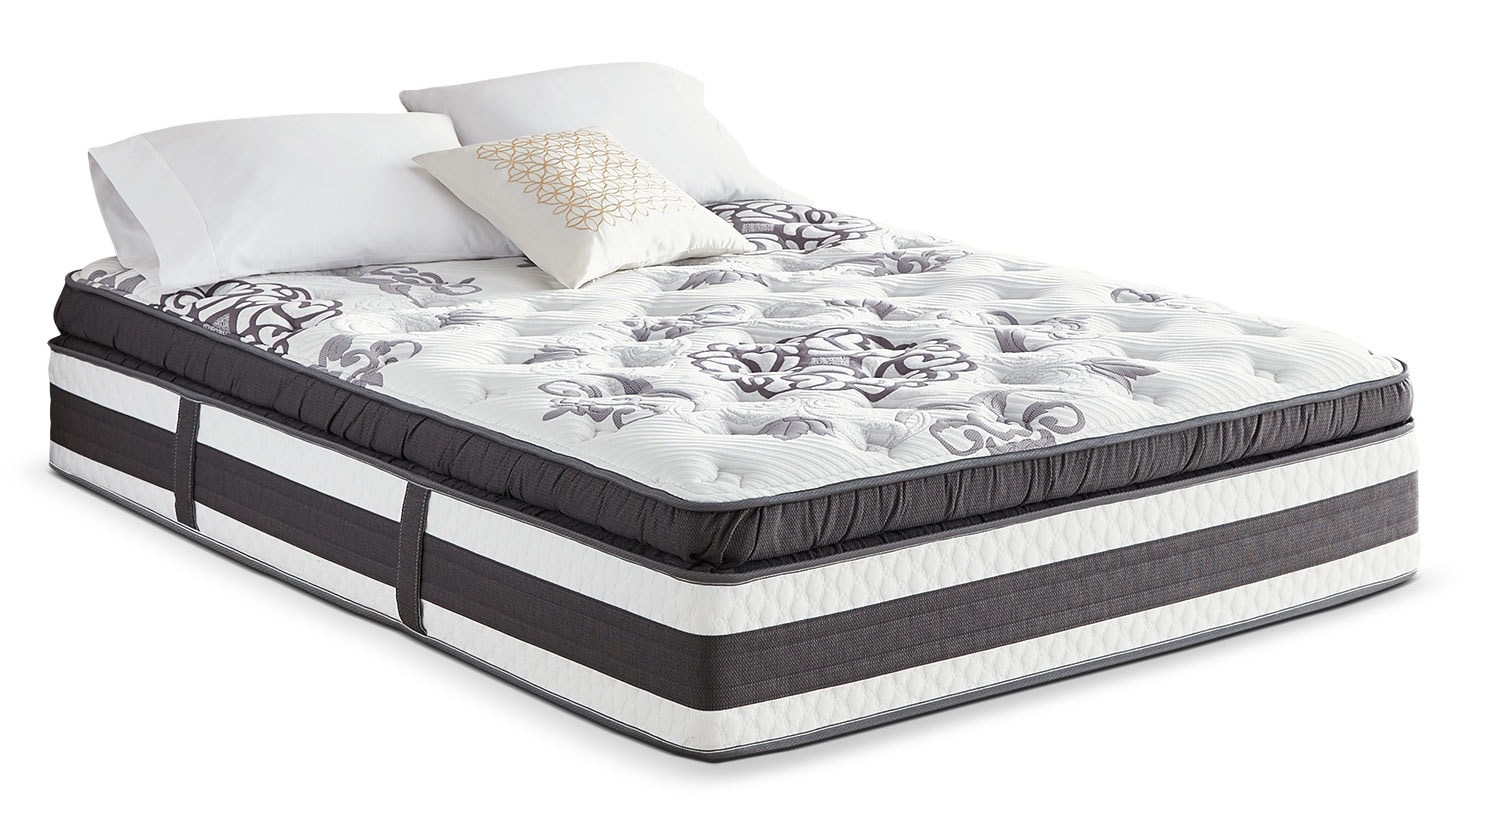 Serta iCollection Hopedale Super Pillow-Top Plush Queen Mattress